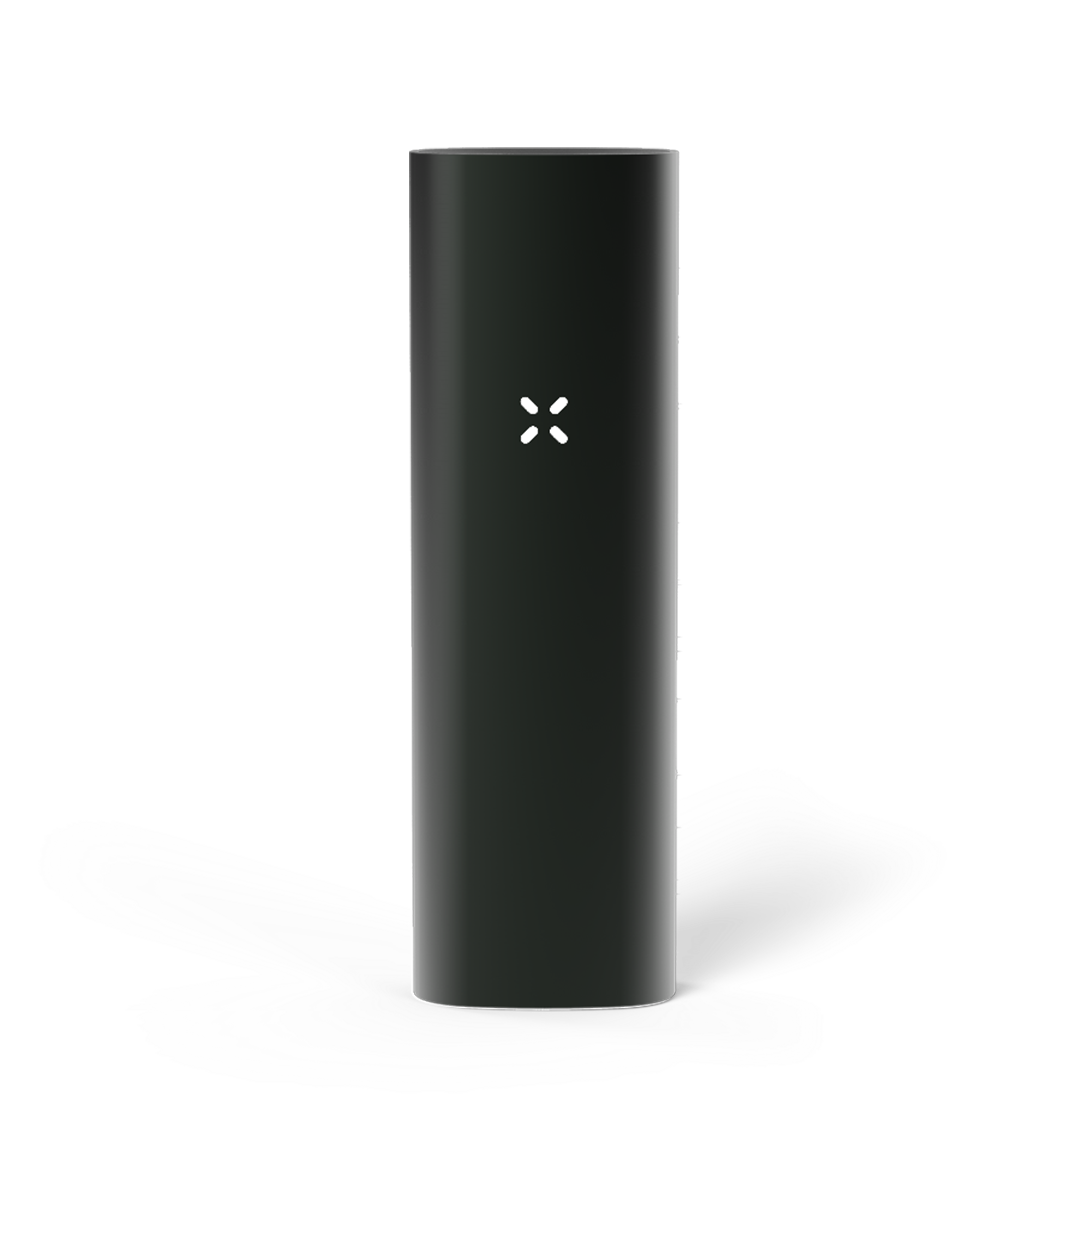 PAX 3™ | Multi-Use Concentrate & Dry Herb Vaporizer